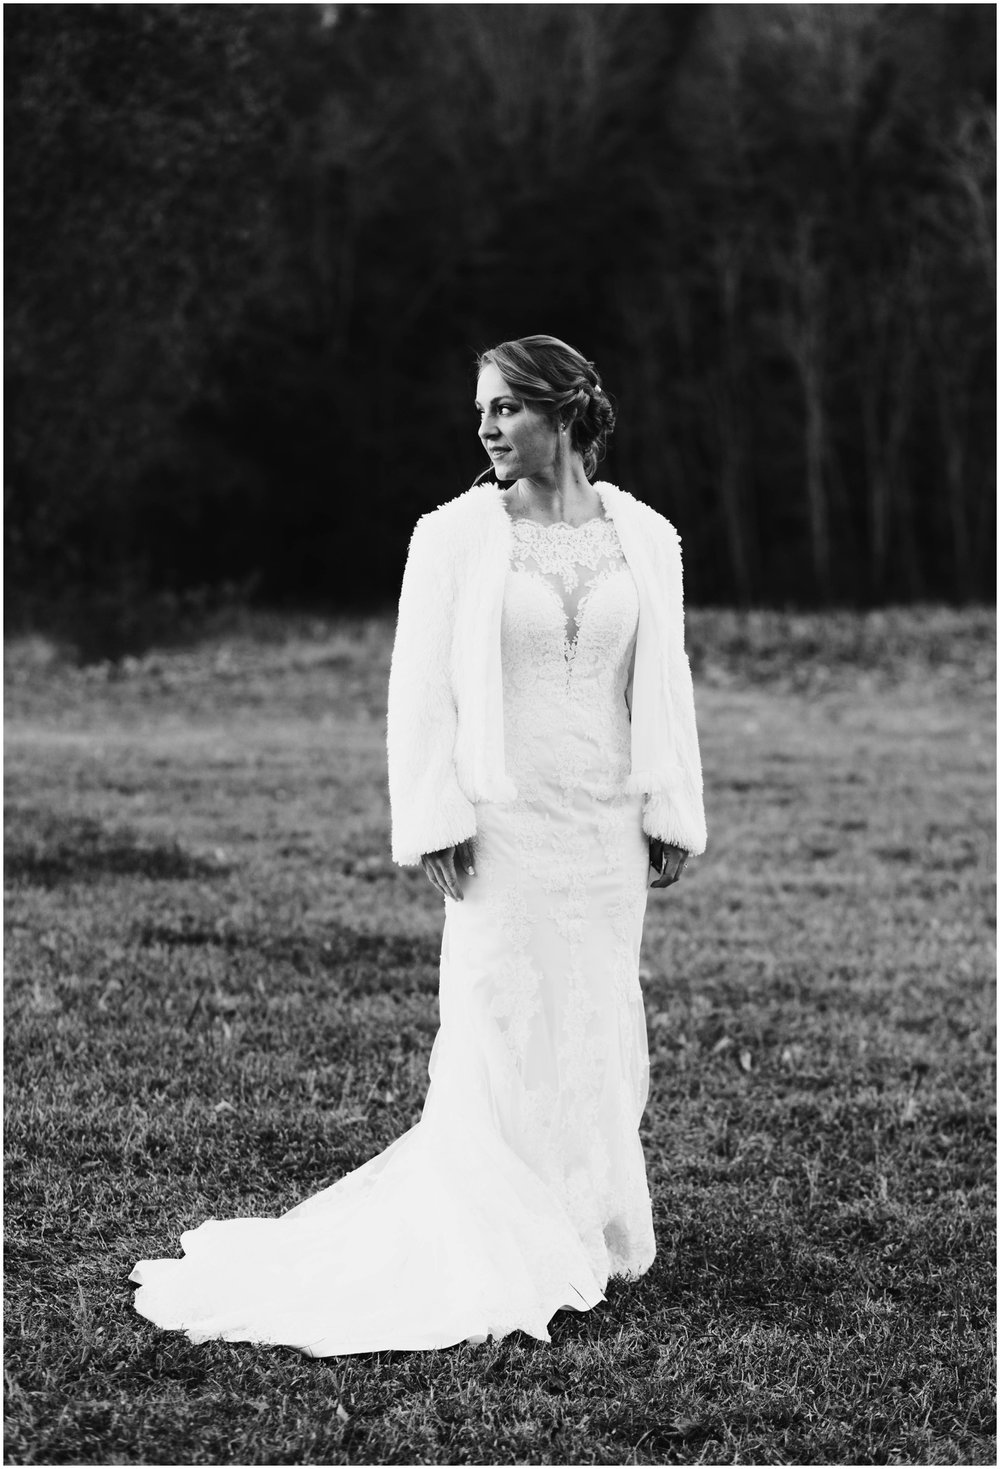 Jess+Dan_rustic_southern_farm_fall_wedding_charlotte_north carolina_taylor powers_0233.jpg